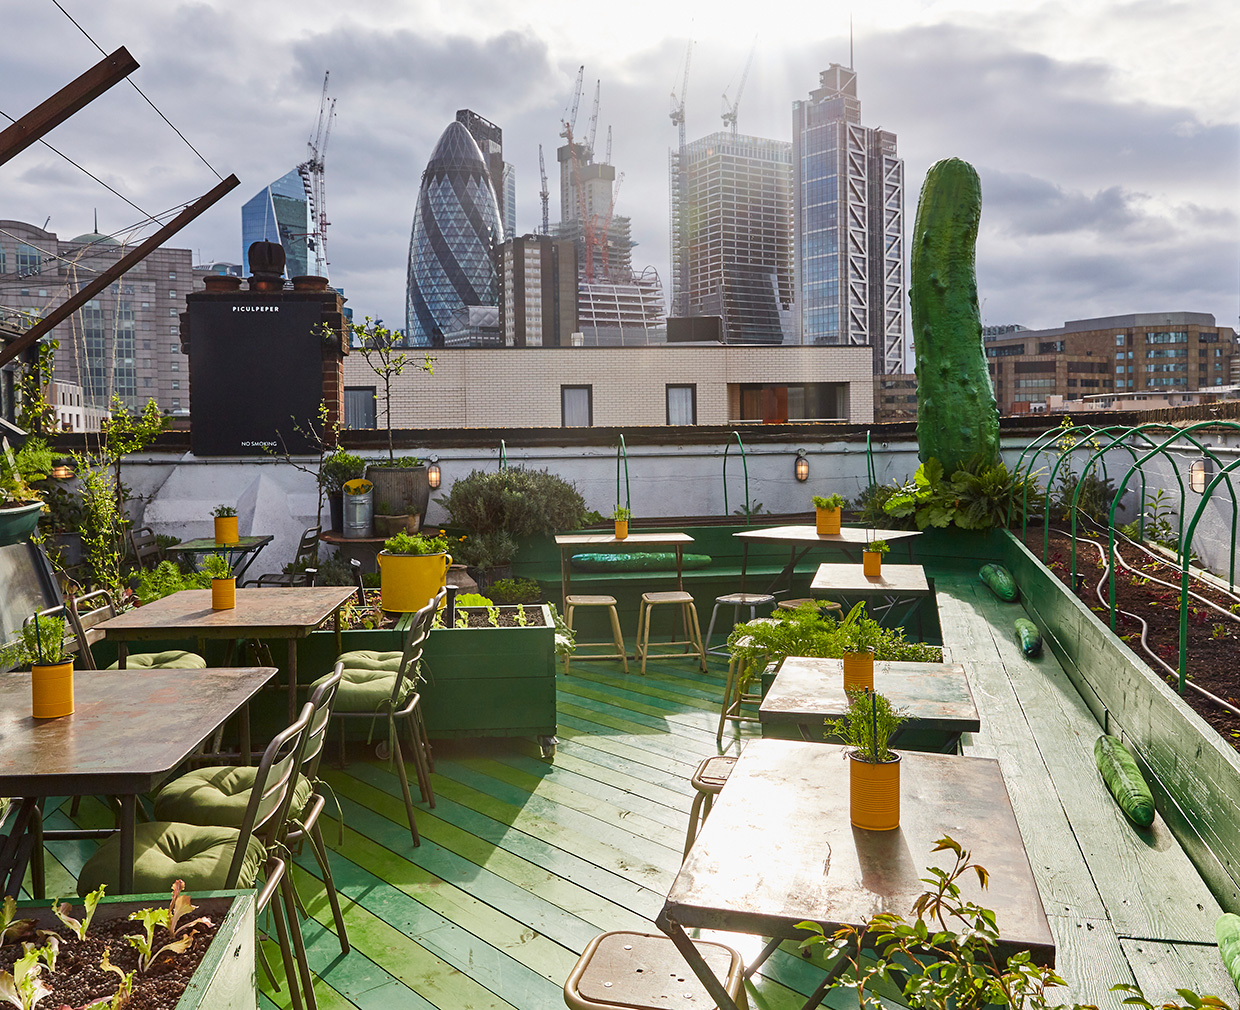 The pickle-centric Piculpeper rooftop bar